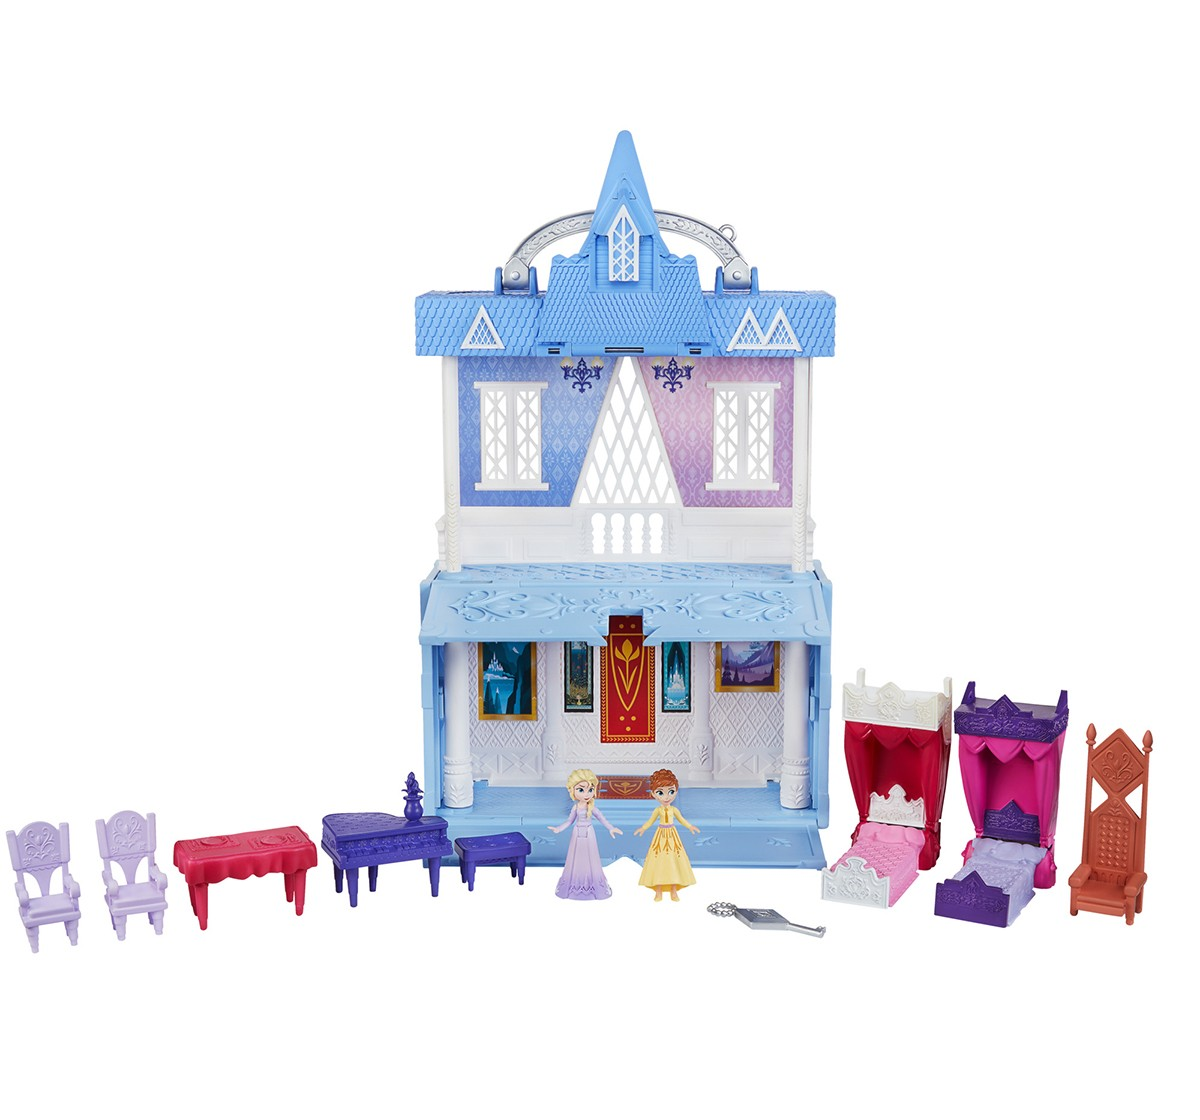 Disney Frozen2 - Arendelle Castle Playset With Handle Dolls & Accessories for Girls age 3Y+